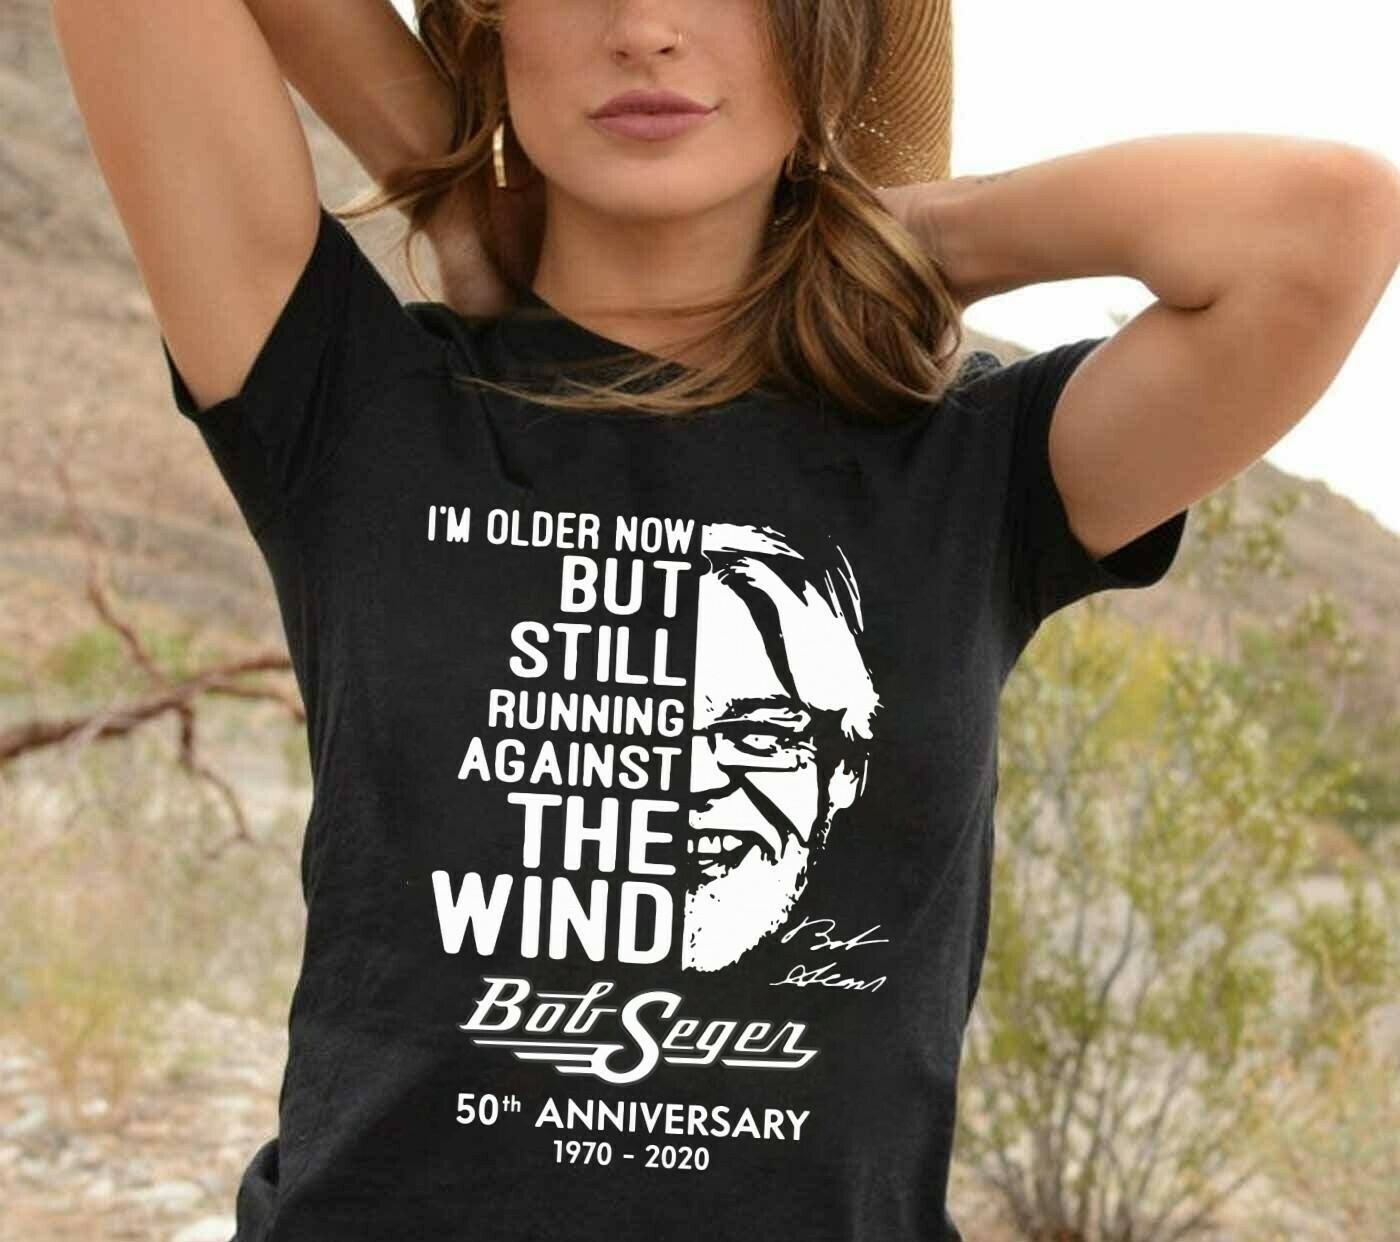 I'm Older Now But Still Running Against The Wind Bob Seger 50th Anniversary 1970 2020 The Silver Bullet Band Vintage Rock and Roll  T-Shirt Hoodie Sweatshirt Sweater Tee Kids Youth Gifts Jolly Family